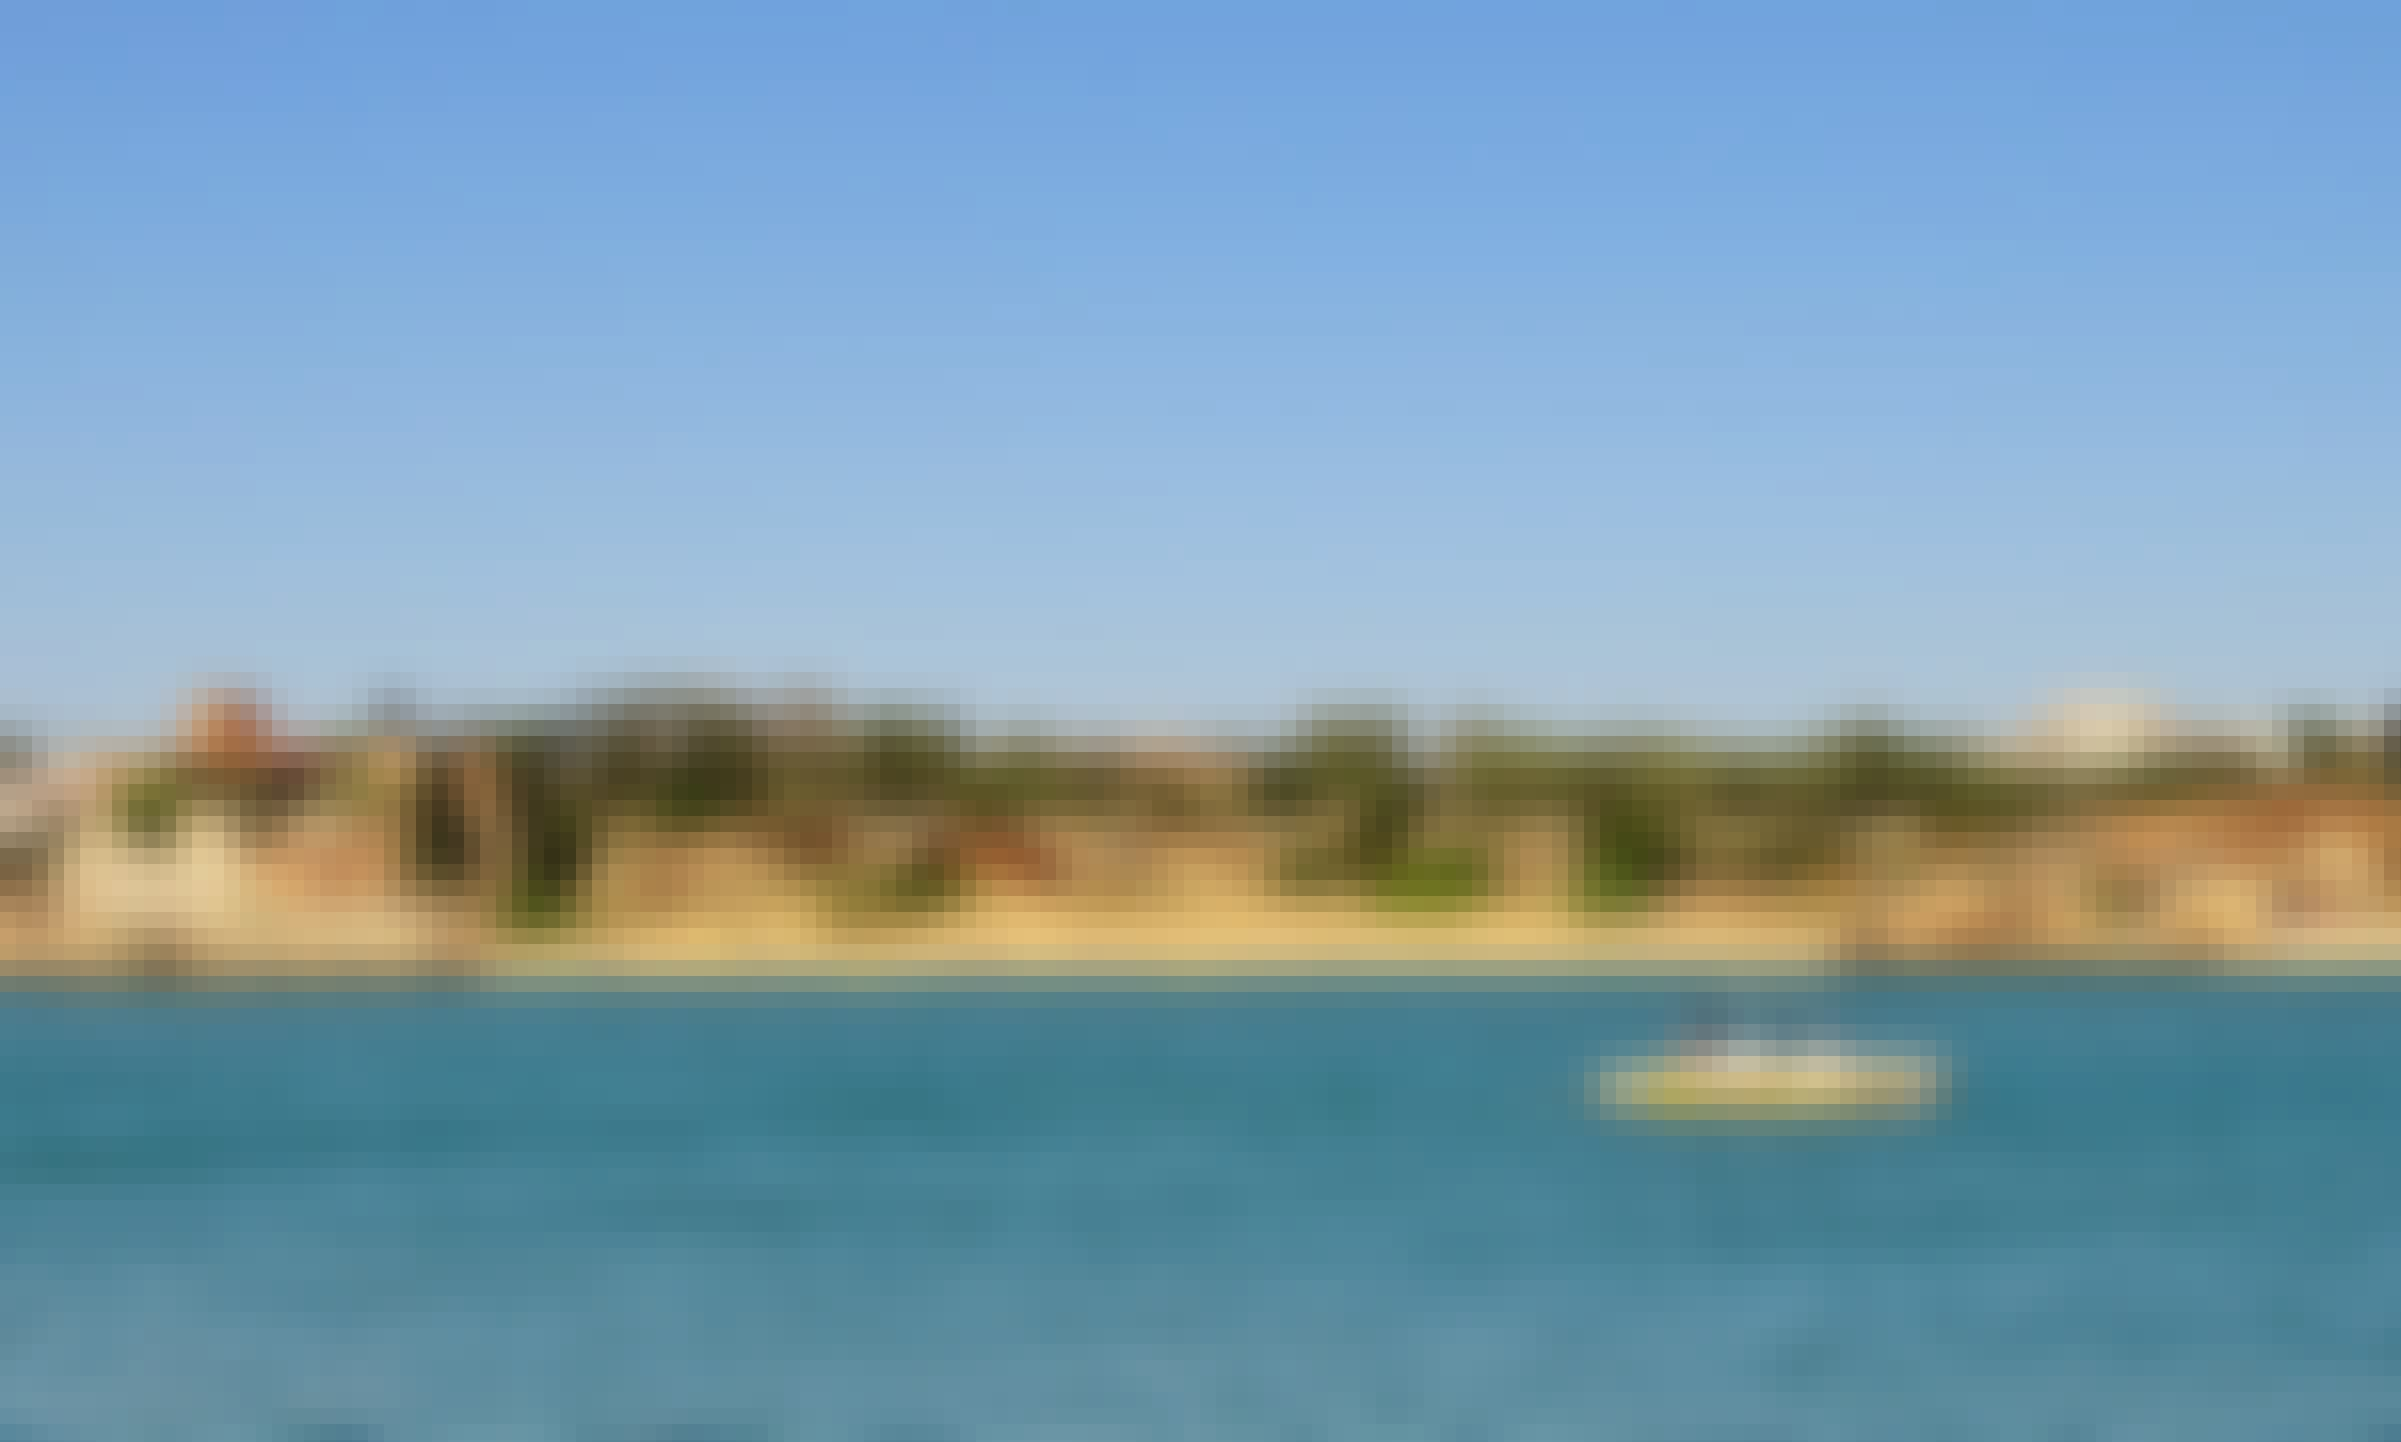 Eco Friendly Solar Boat Tour on the Arade River Mouth, in Portimão, Algarve